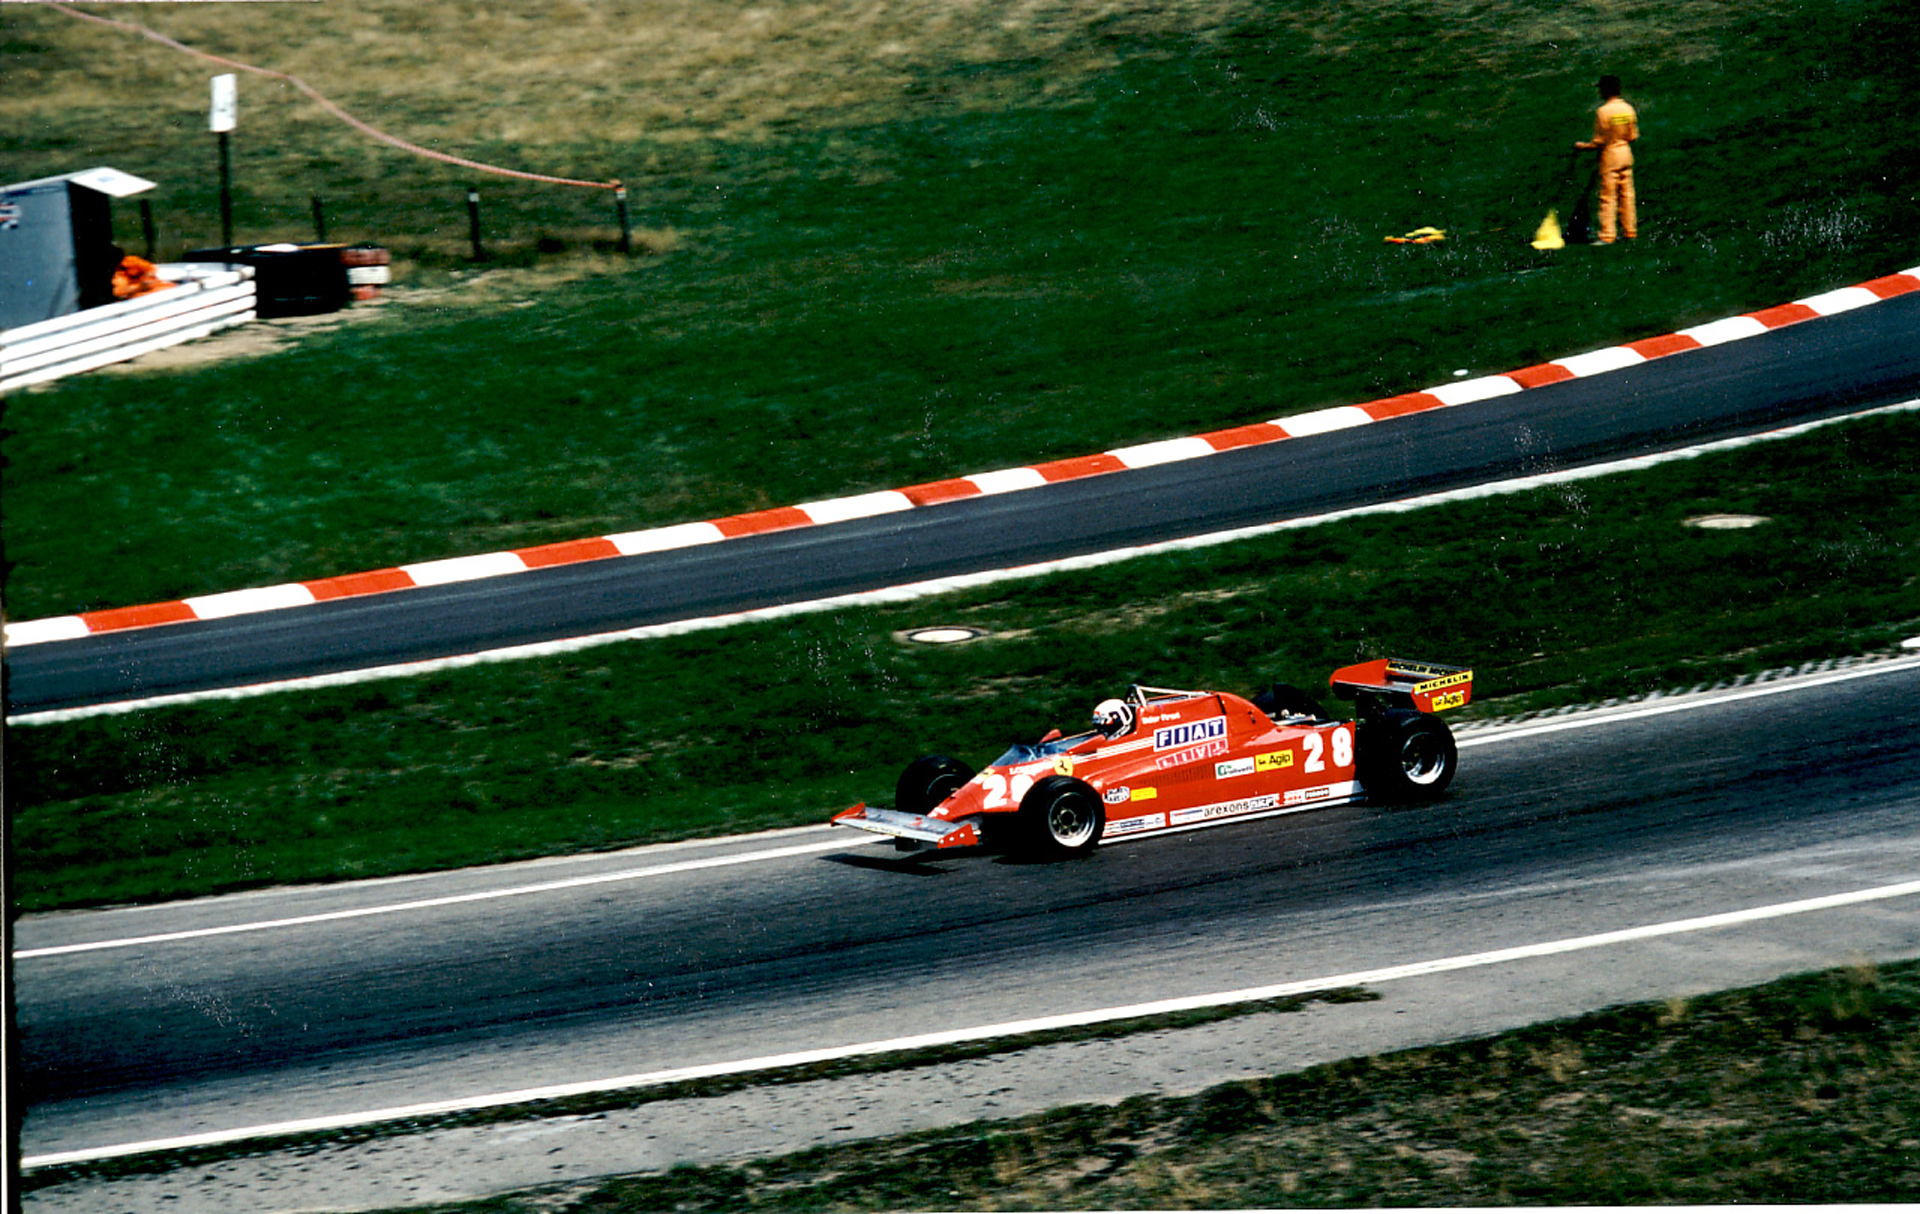 DIDIER PIRONI HOCKENHEIM 1981- Photo Thierry Le Bras